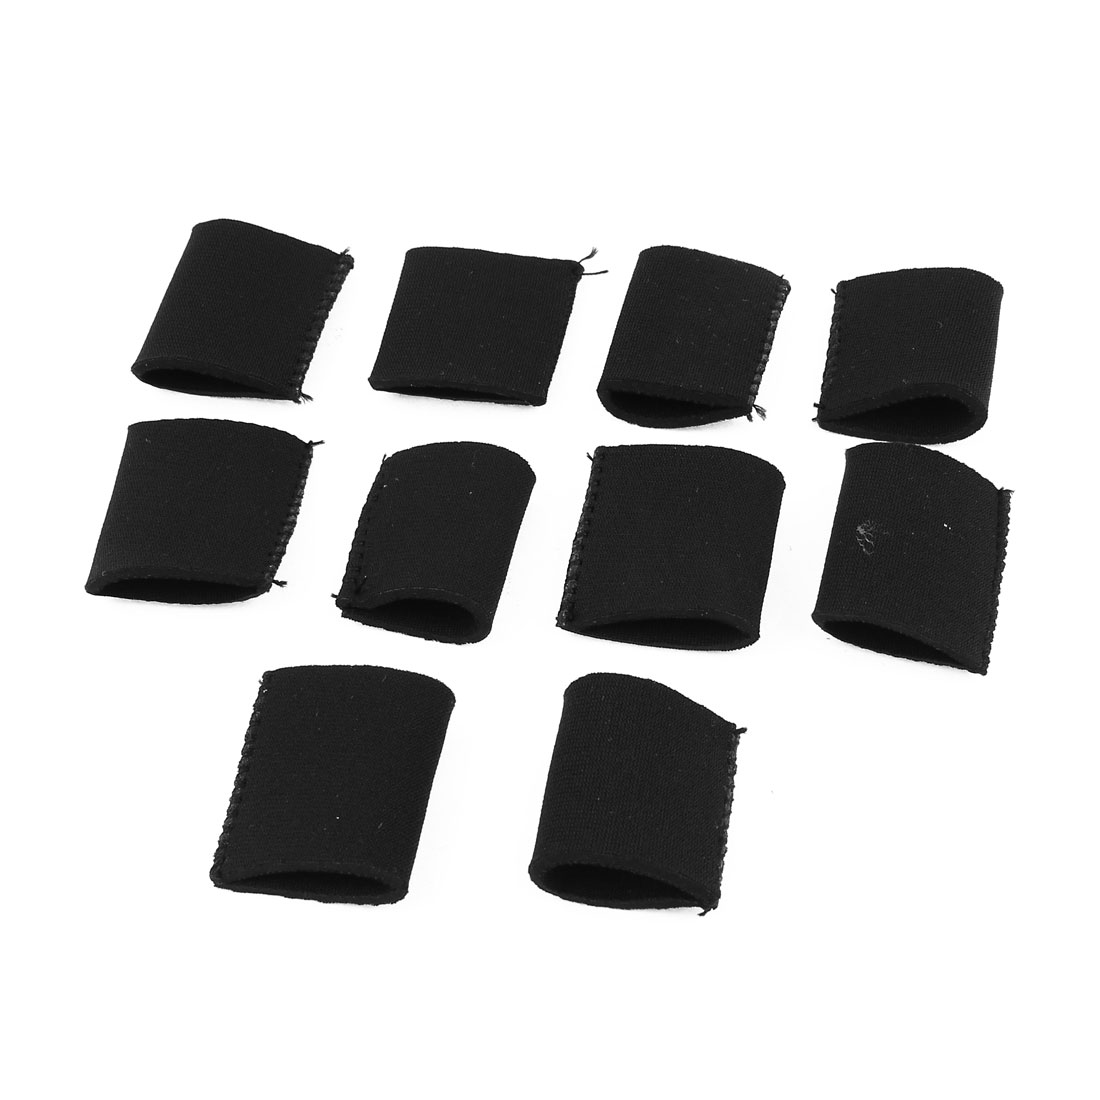 10 x Black Outdoor Sports Training Stretchy Finger Sleeve Guard